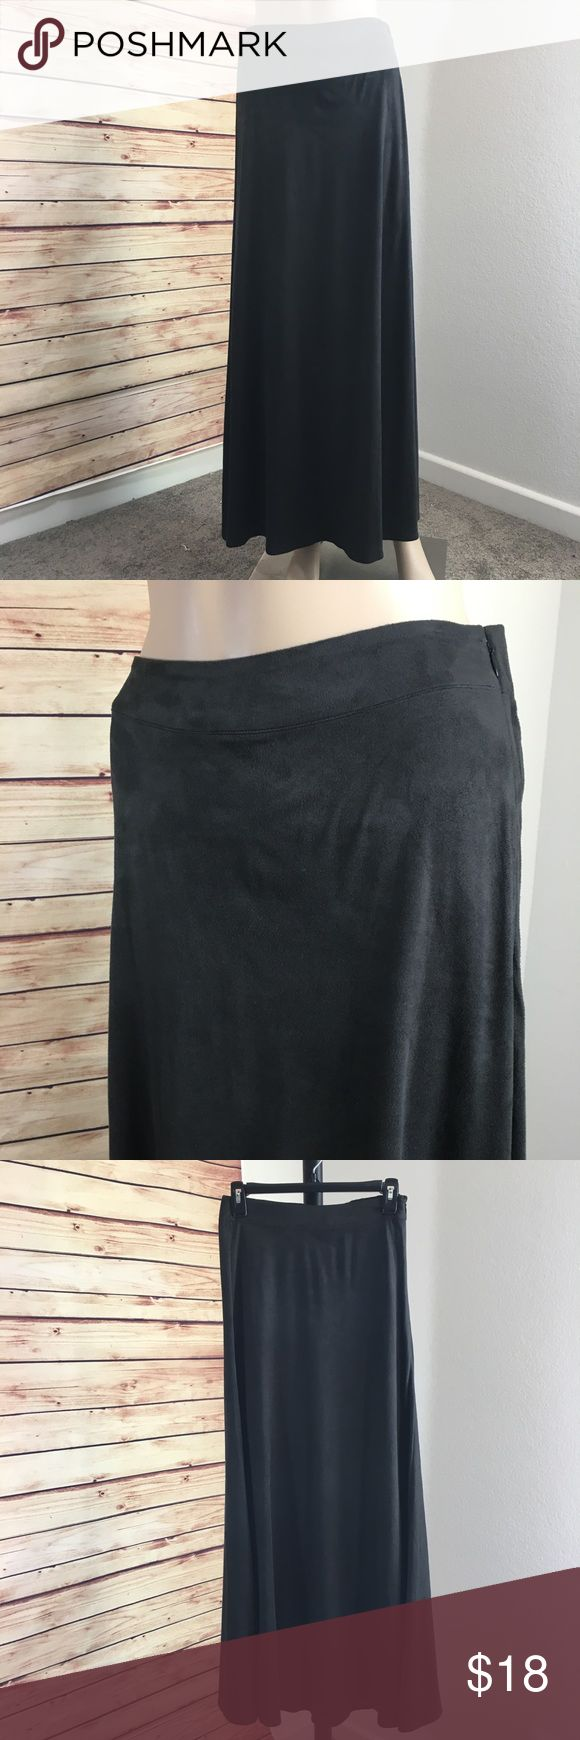 """Marc Bouwer charcoal maxi skirt Brand: Marc Bouwer Size: XXS Details: color is like a dark charcoal grayish black, hidden side zipper Waist measurement (laying flat): 12.5"""" Length: 39"""" Material: 95% polyester, 5% spandex  Condition: preloved, excellent Marc Bouwer Skirts Maxi"""